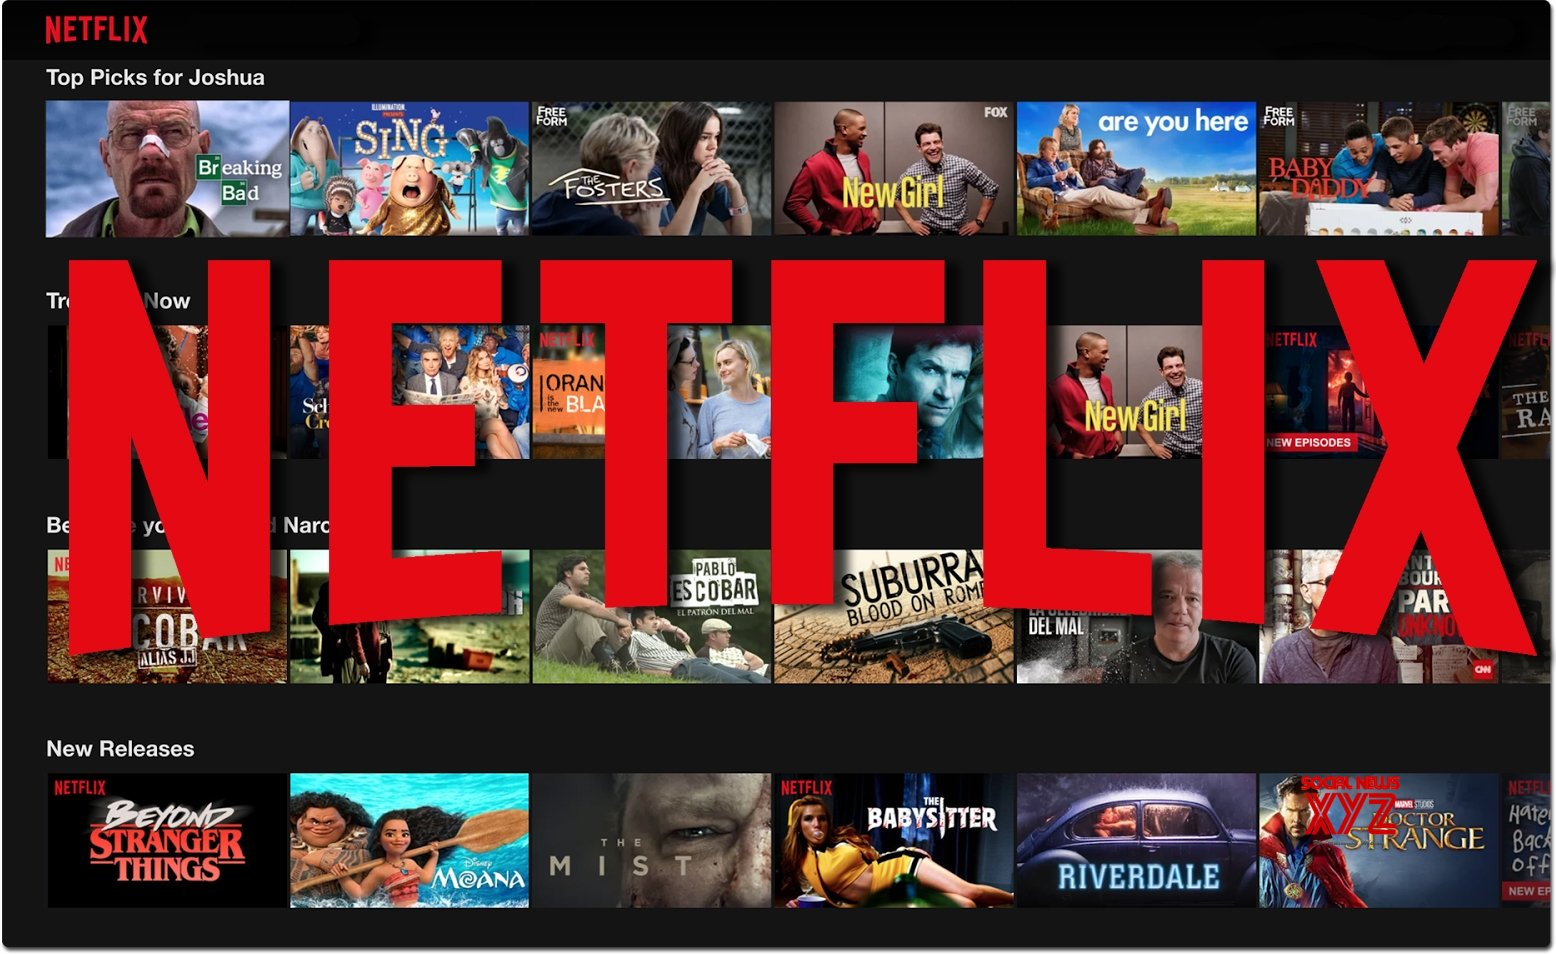 Netflix is pulling its app from some older Roku players